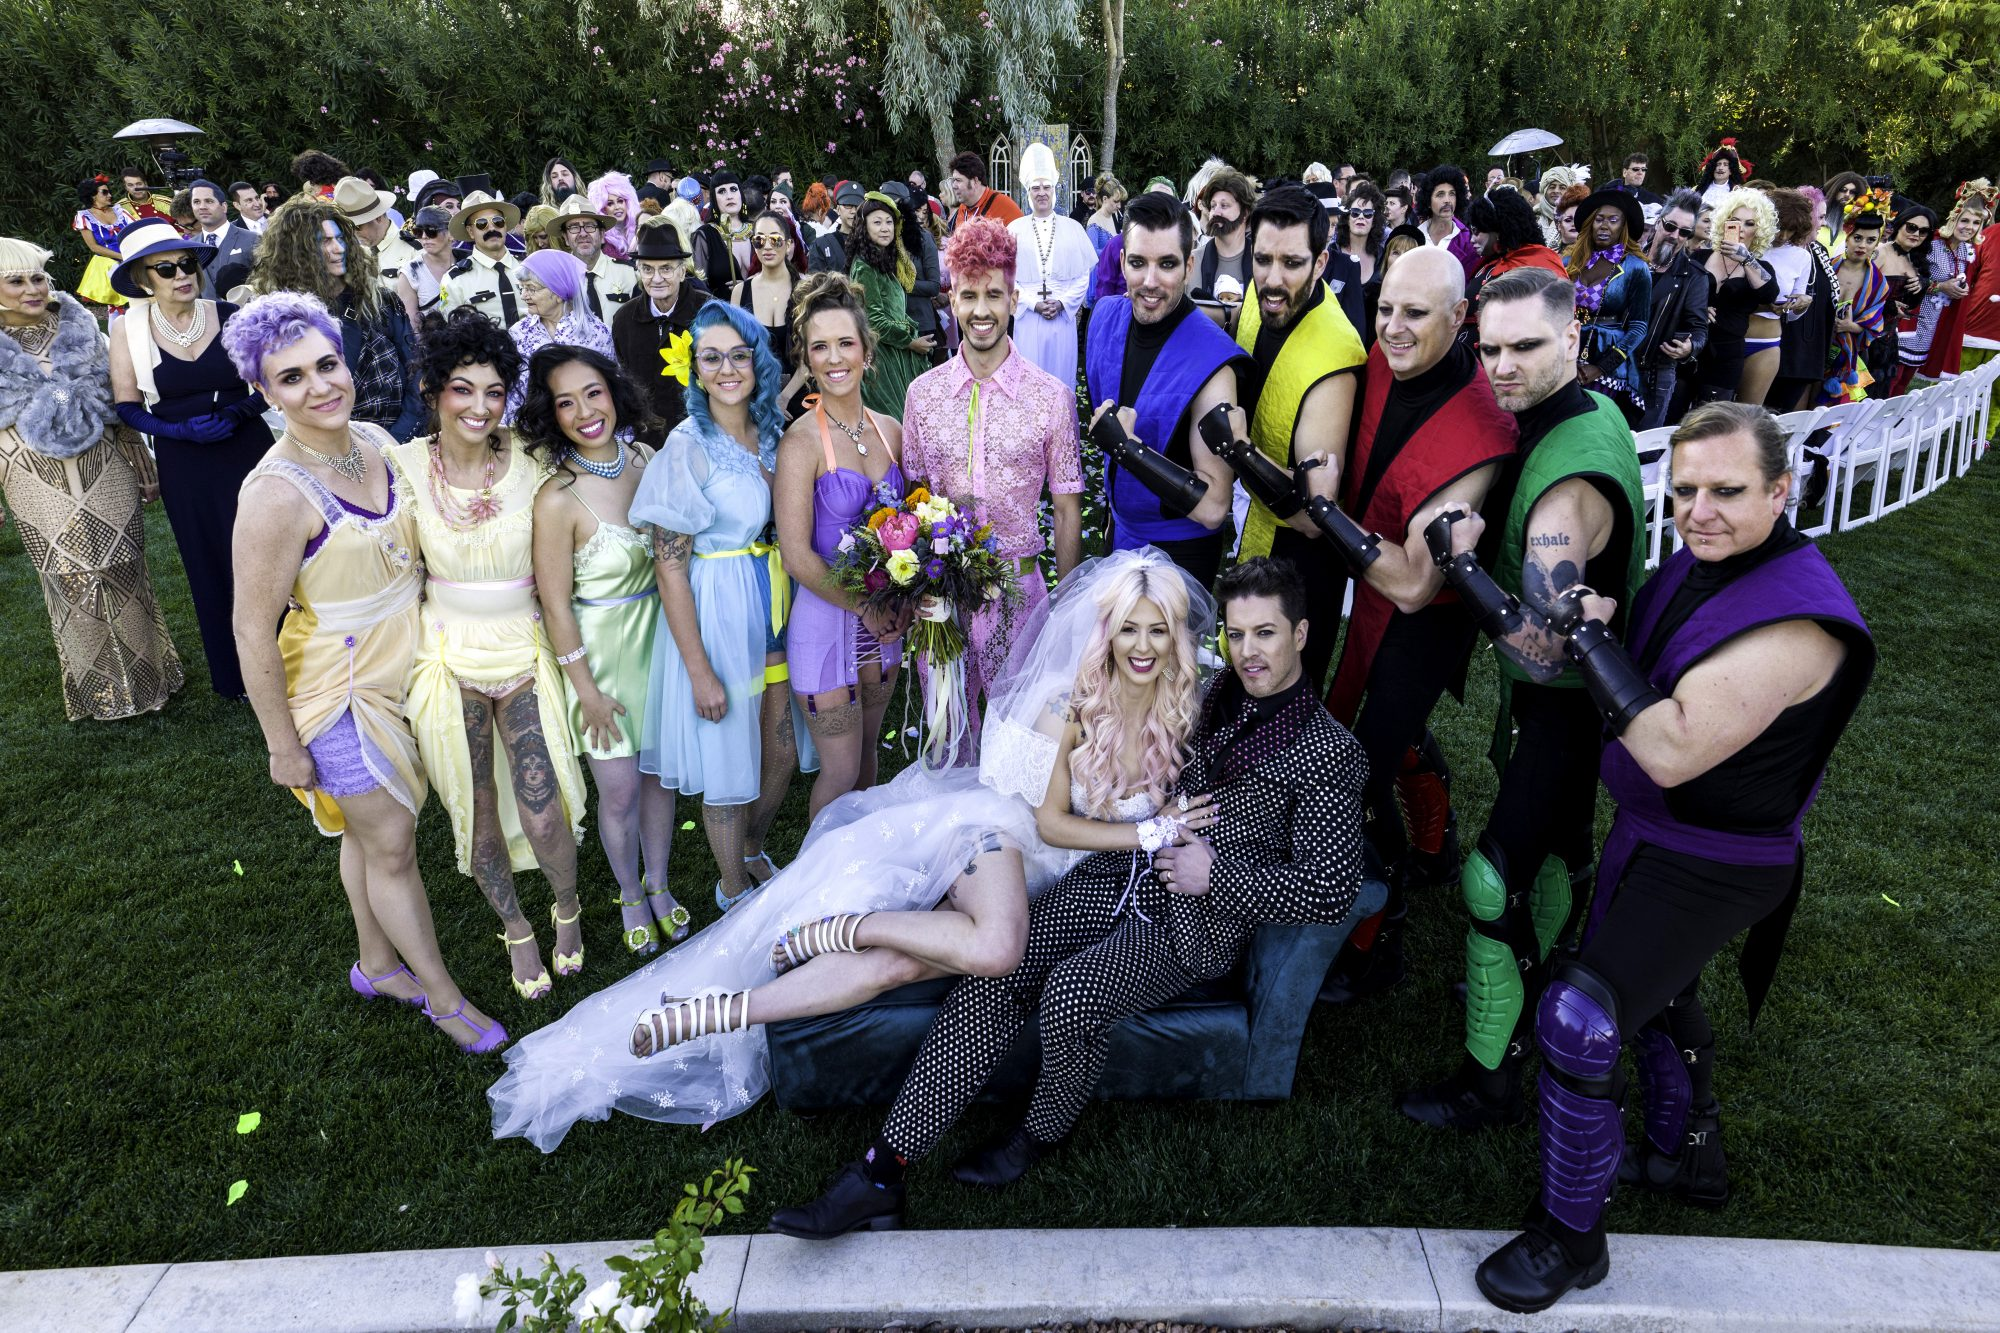 jd scott and annalee belle wedding group photo